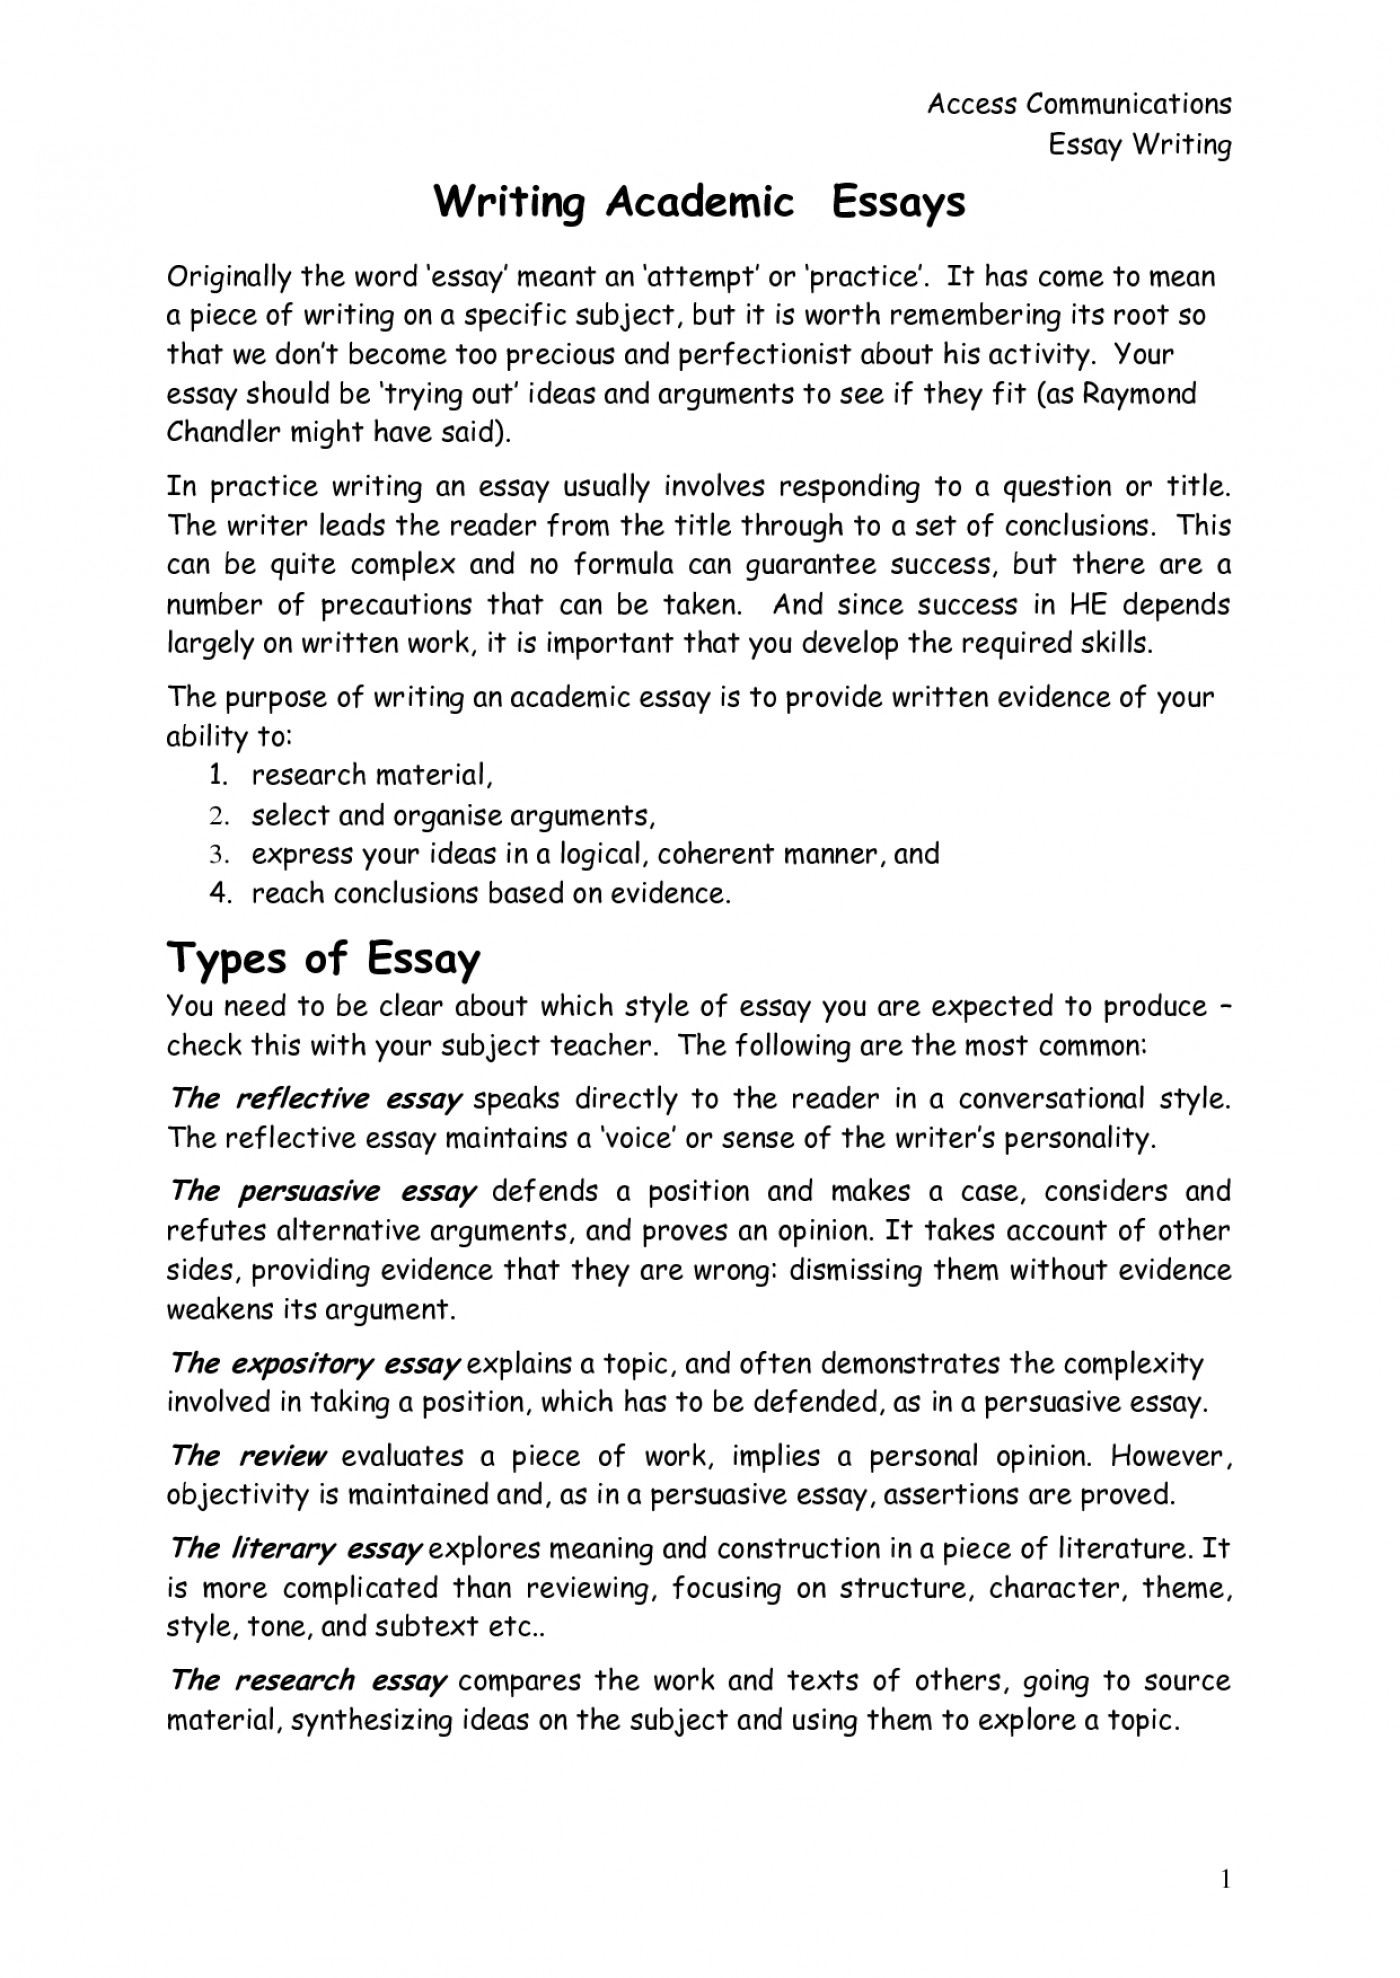 016 Reflective Essay On Academic Writings Beautiful Examples Advanced Higher English Writing Example Pdf About Life 1400